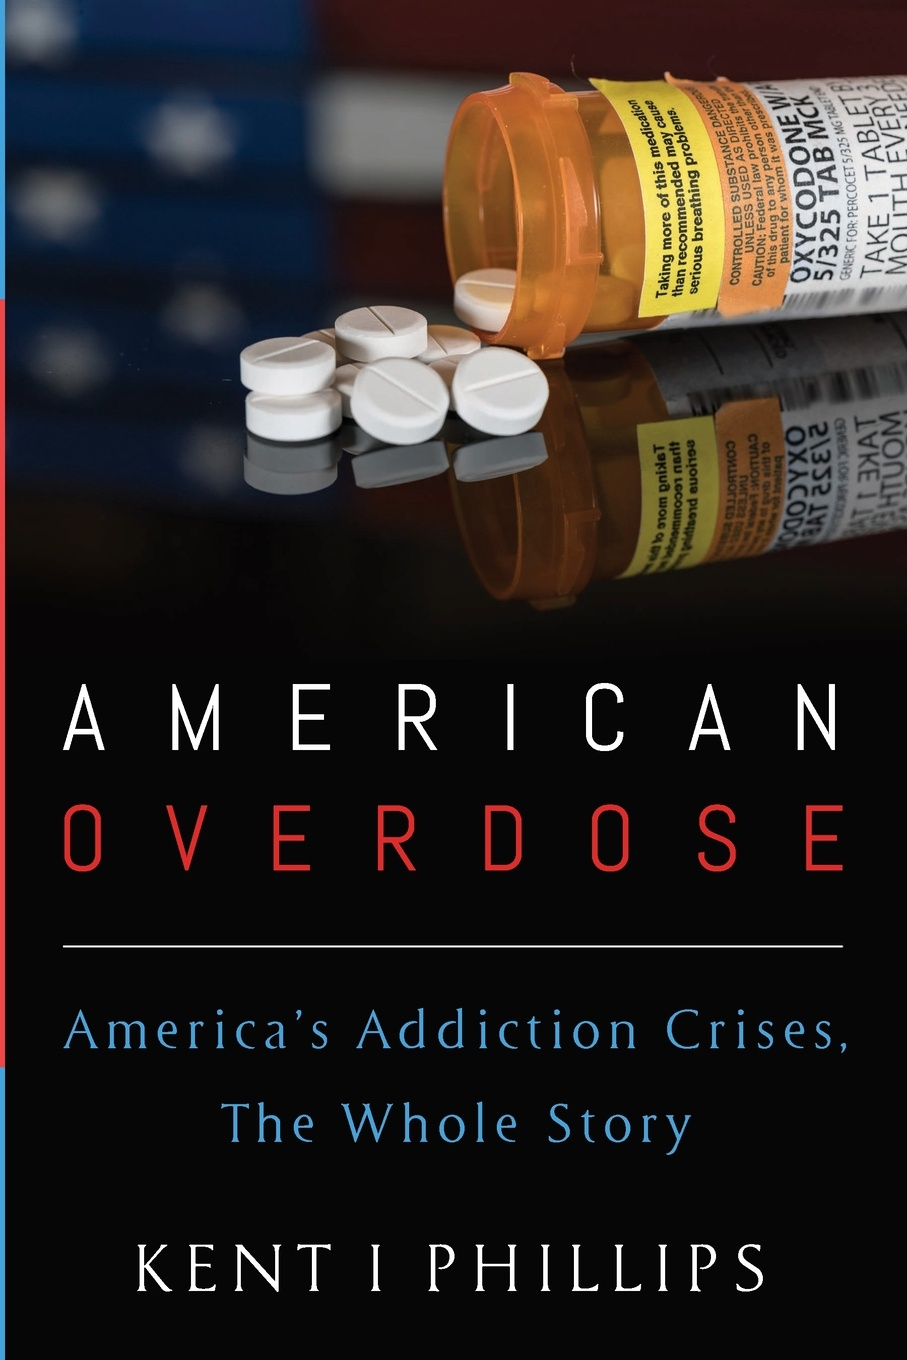 American Overdose. America's Addiction Crises, The Whole Story